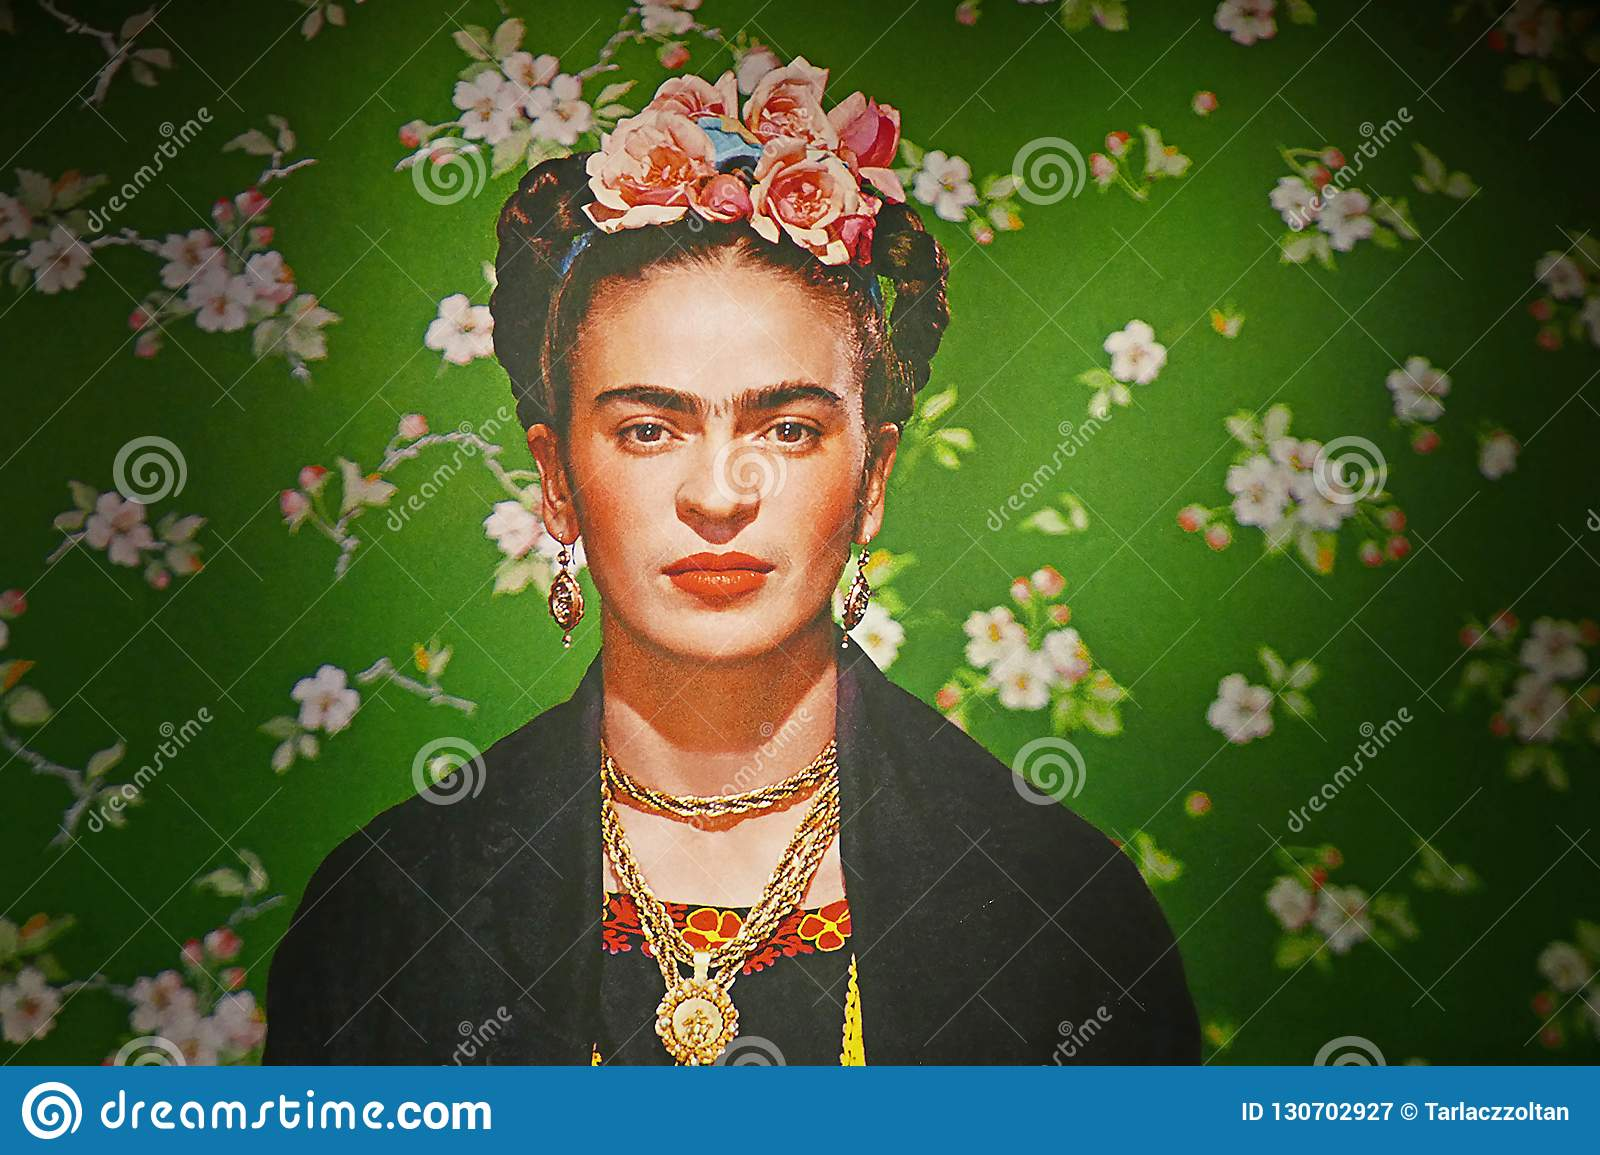 Frida Kahlo exhibition in Budapest Hungary in the autumn of 2018. Masterpieces from the Museum Dolores Olmedo collection in Mexico City.